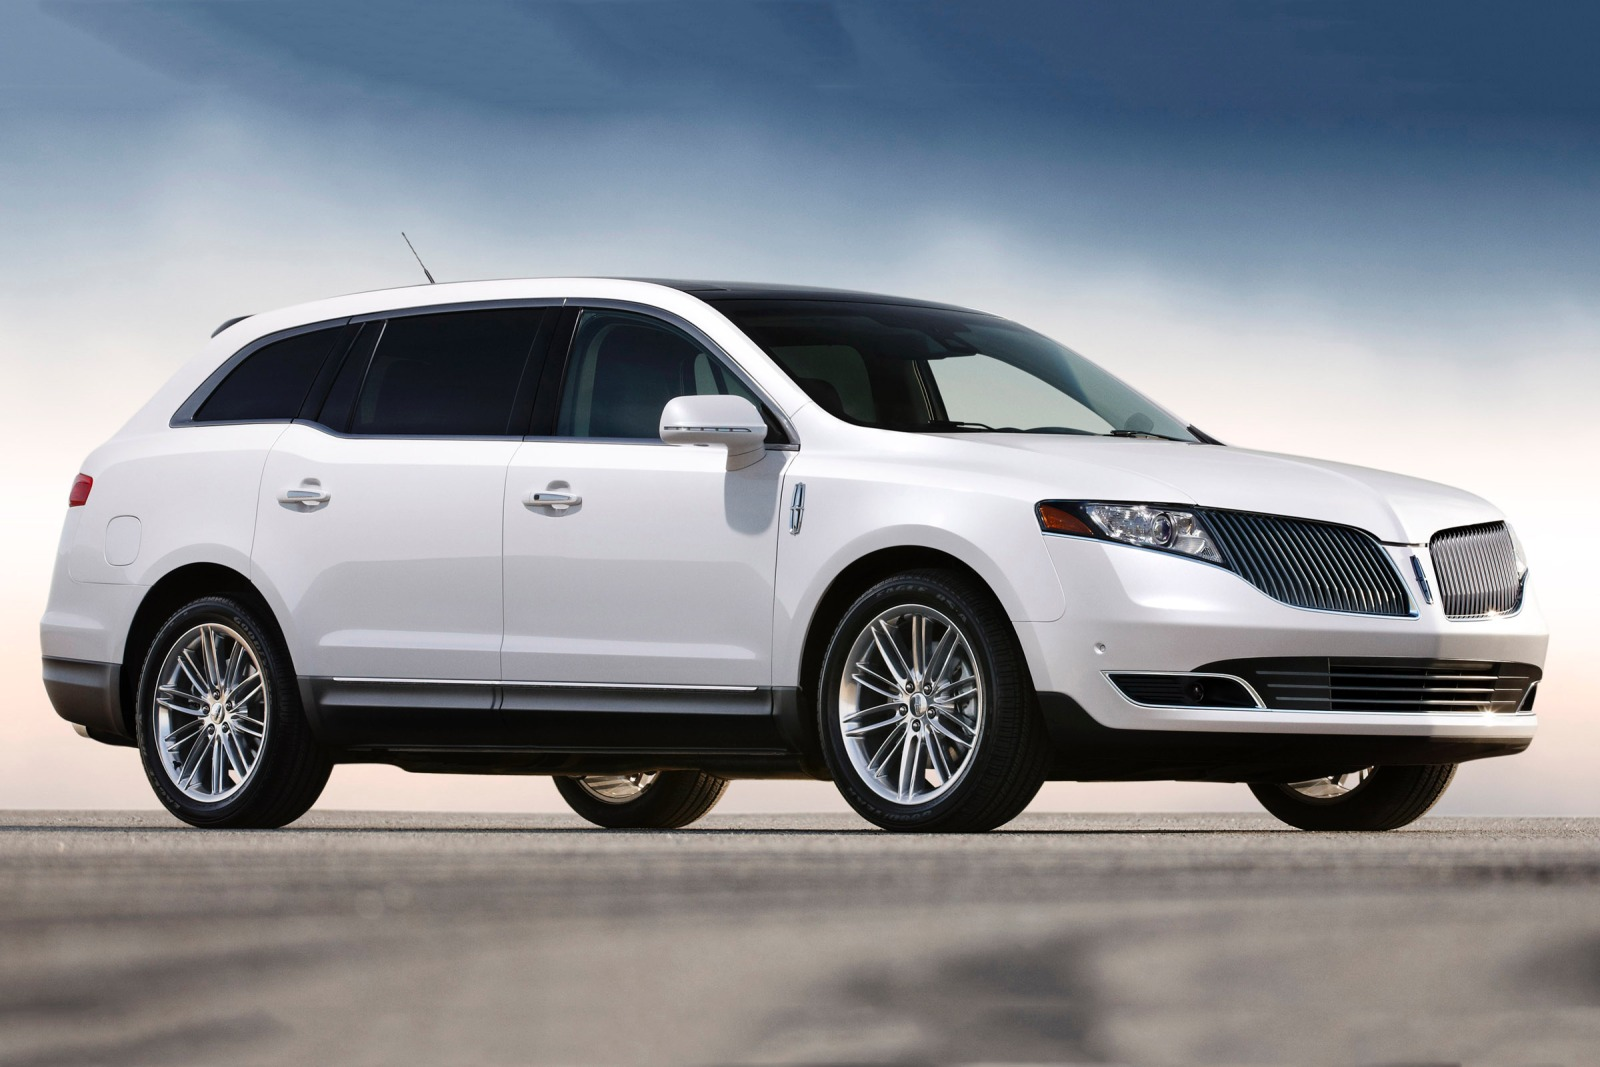 2017 Lincoln Mkx Premiere >> 2016 Lincoln mkt | Car Photos Catalog 2019